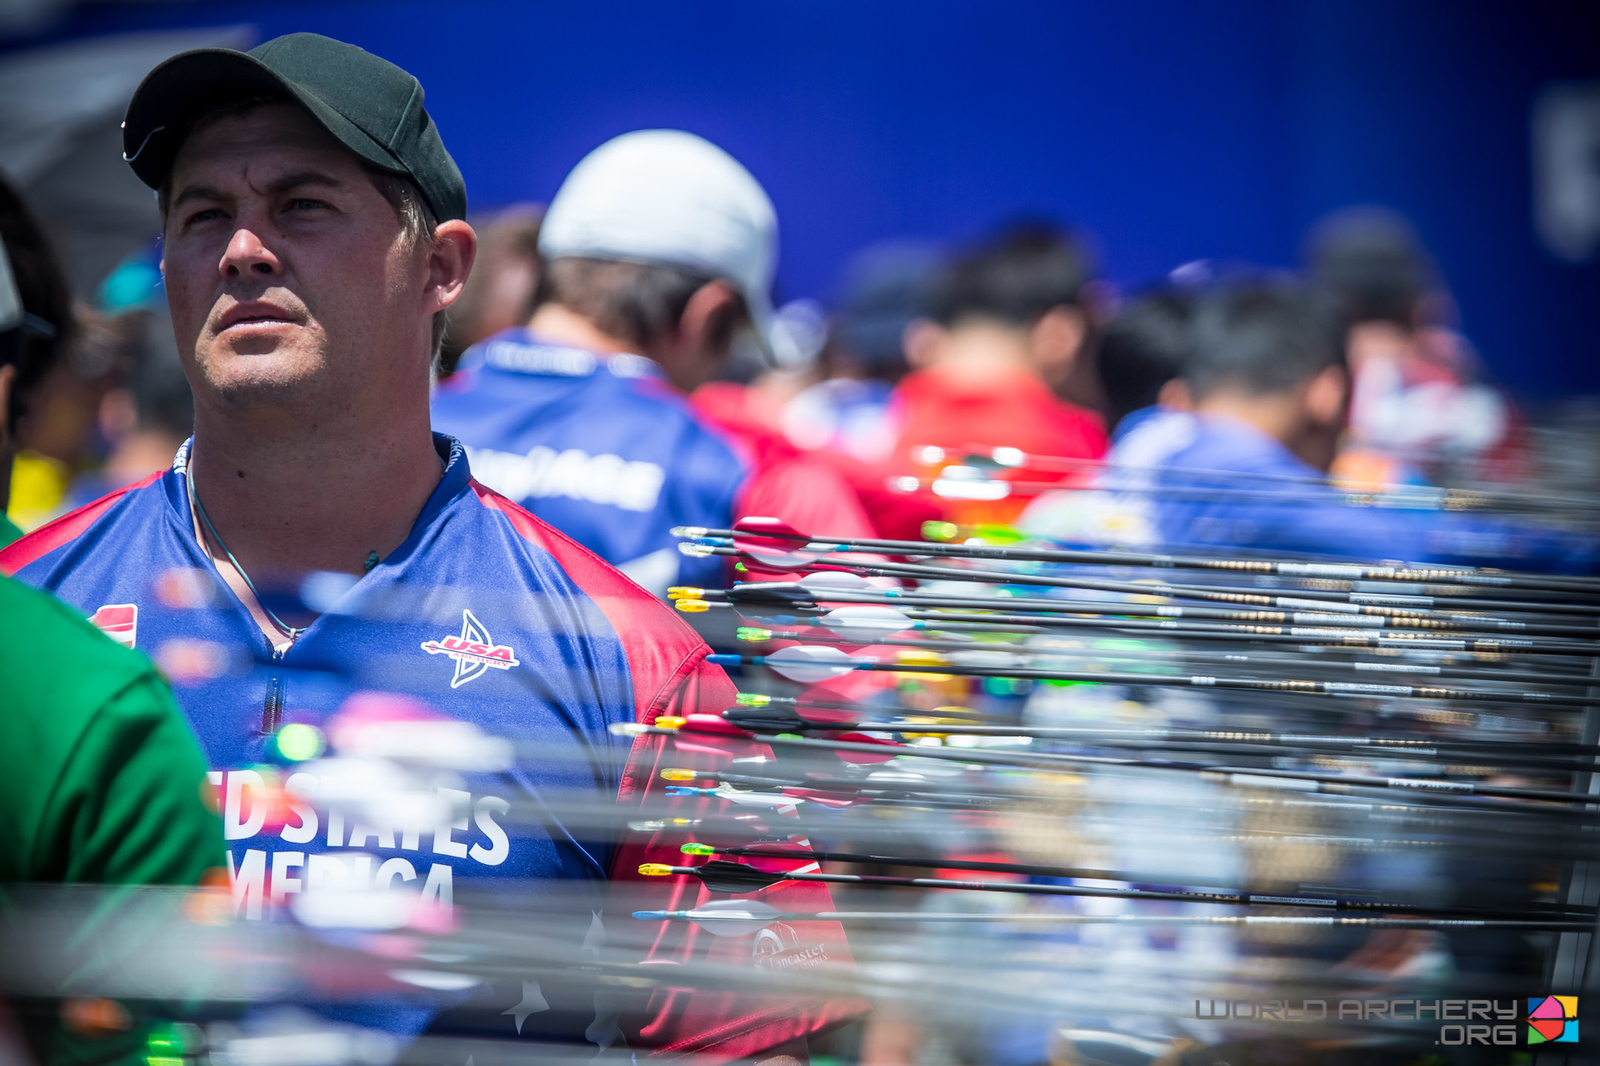 Brady Ellison during another impressive scoring round in Shanghai. Photo: World Archery